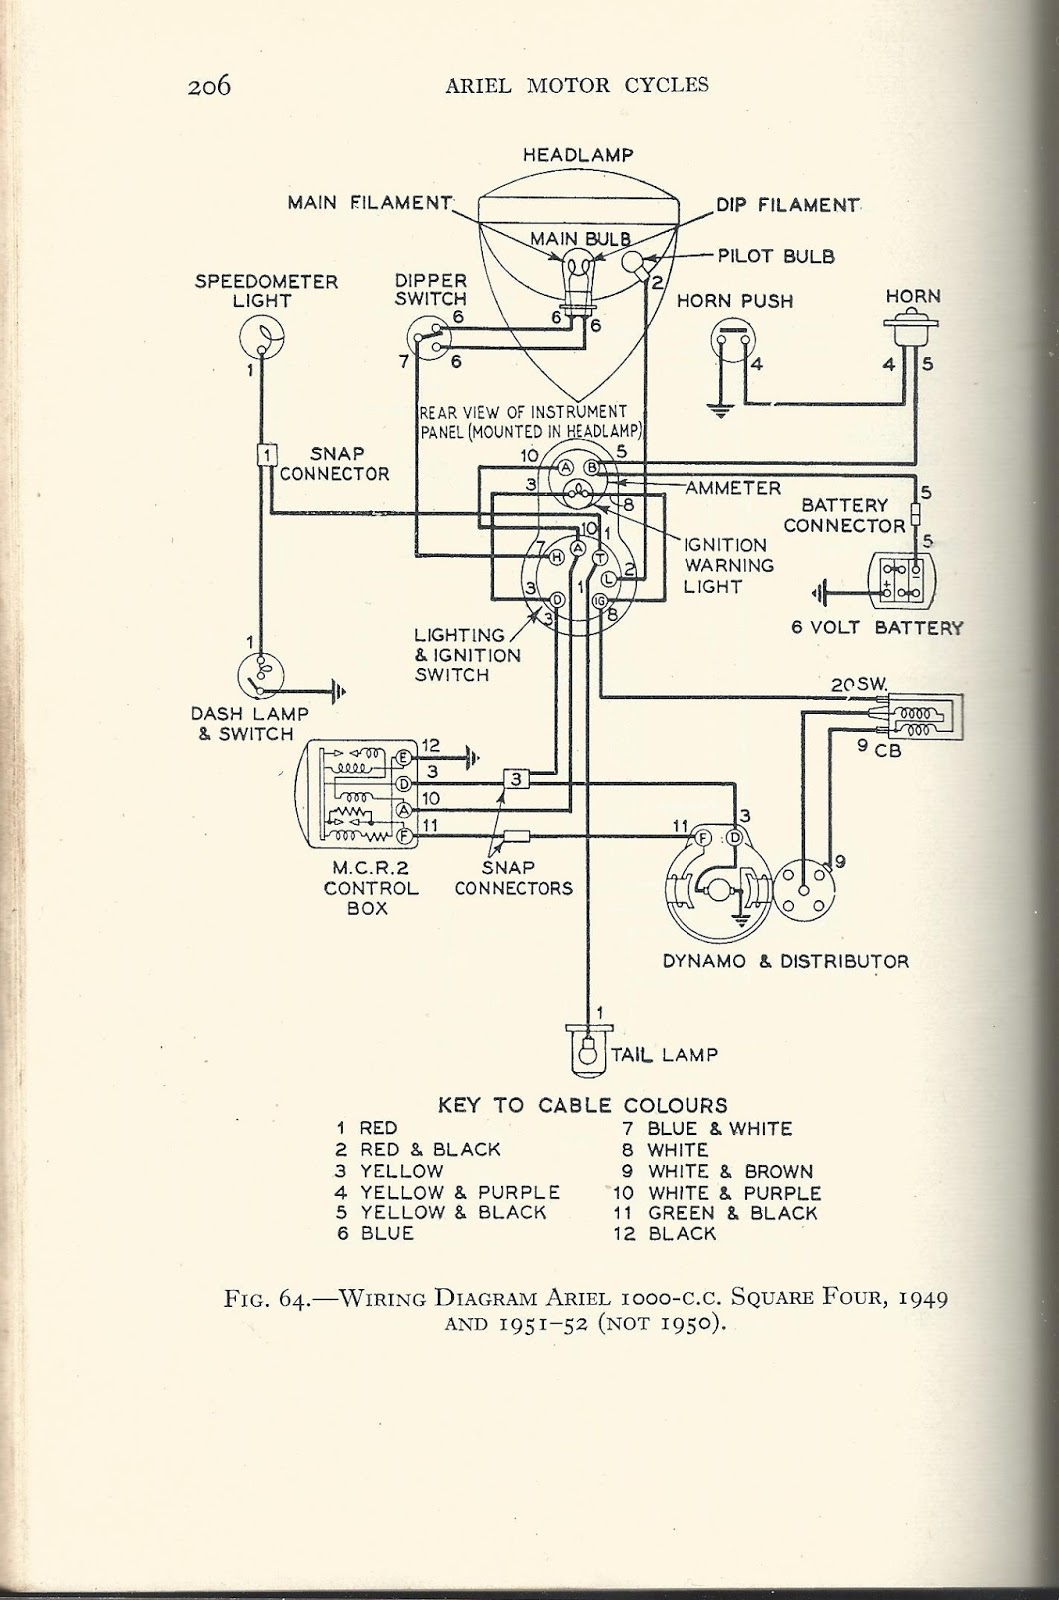 1955 Ford Fairlane Wiring Diagram Ceiling Fan 3 Speed Switch 55 Radio Library